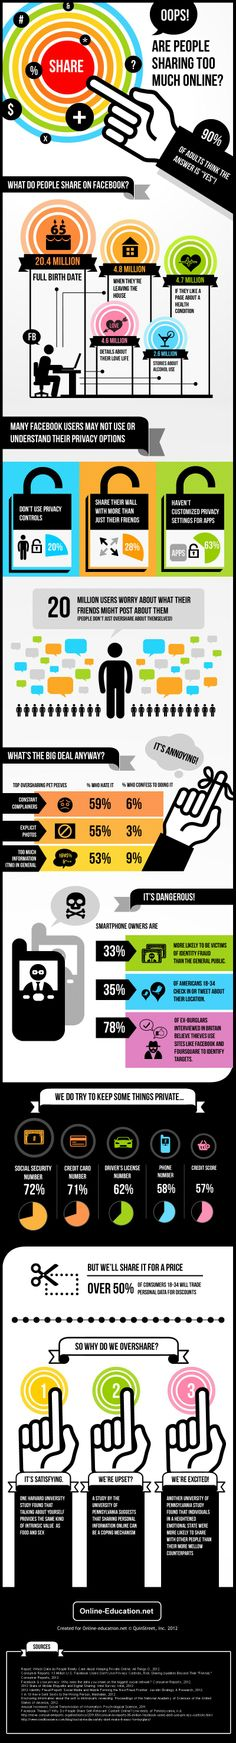 Sharing Too Much Online infographic #socialmedia